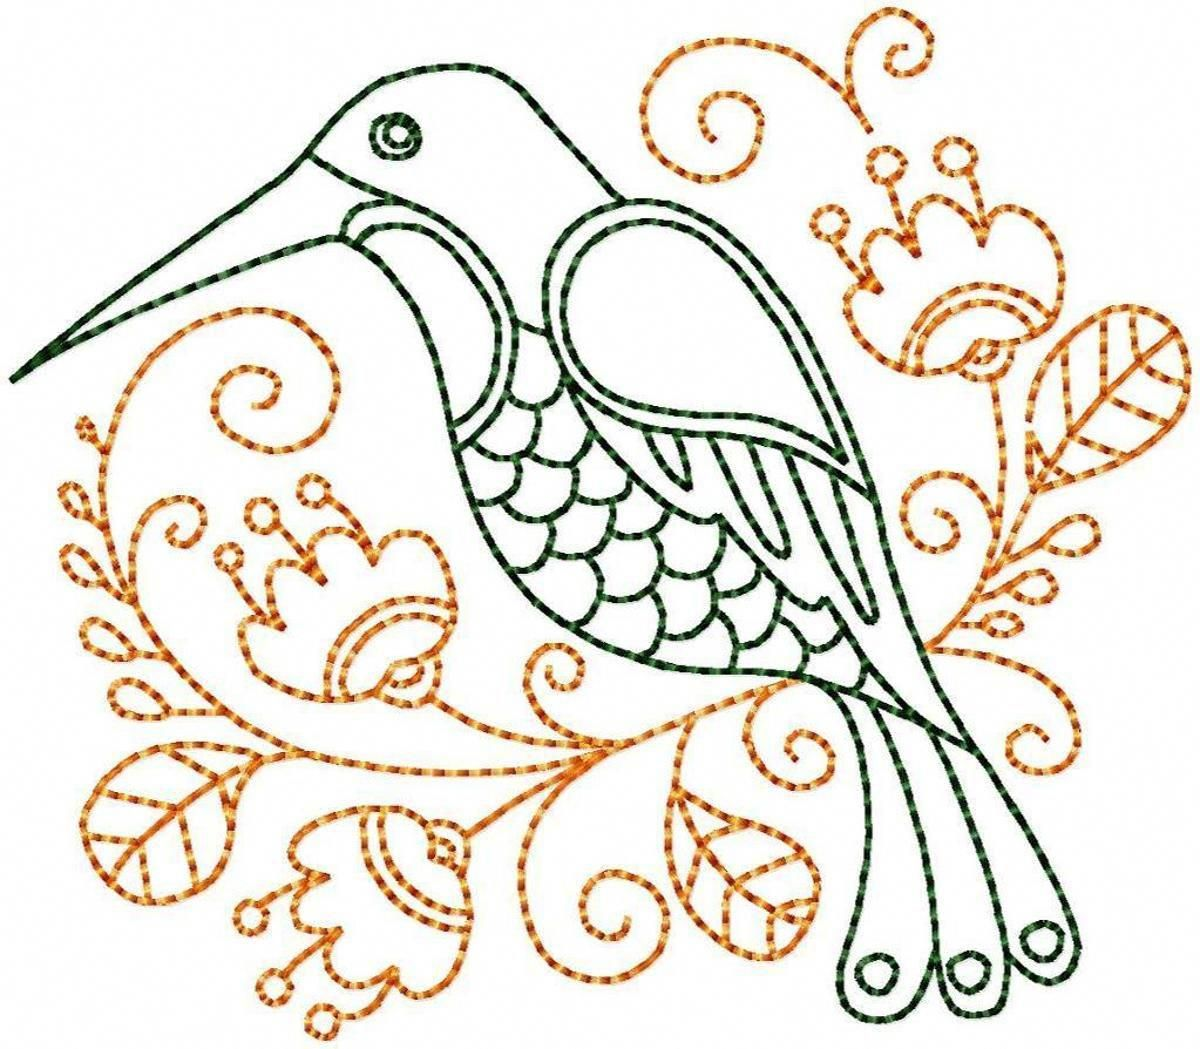 Hummingbird #9 Hand Embroidery Pattern | Craftsy #embroiderypatterns ...